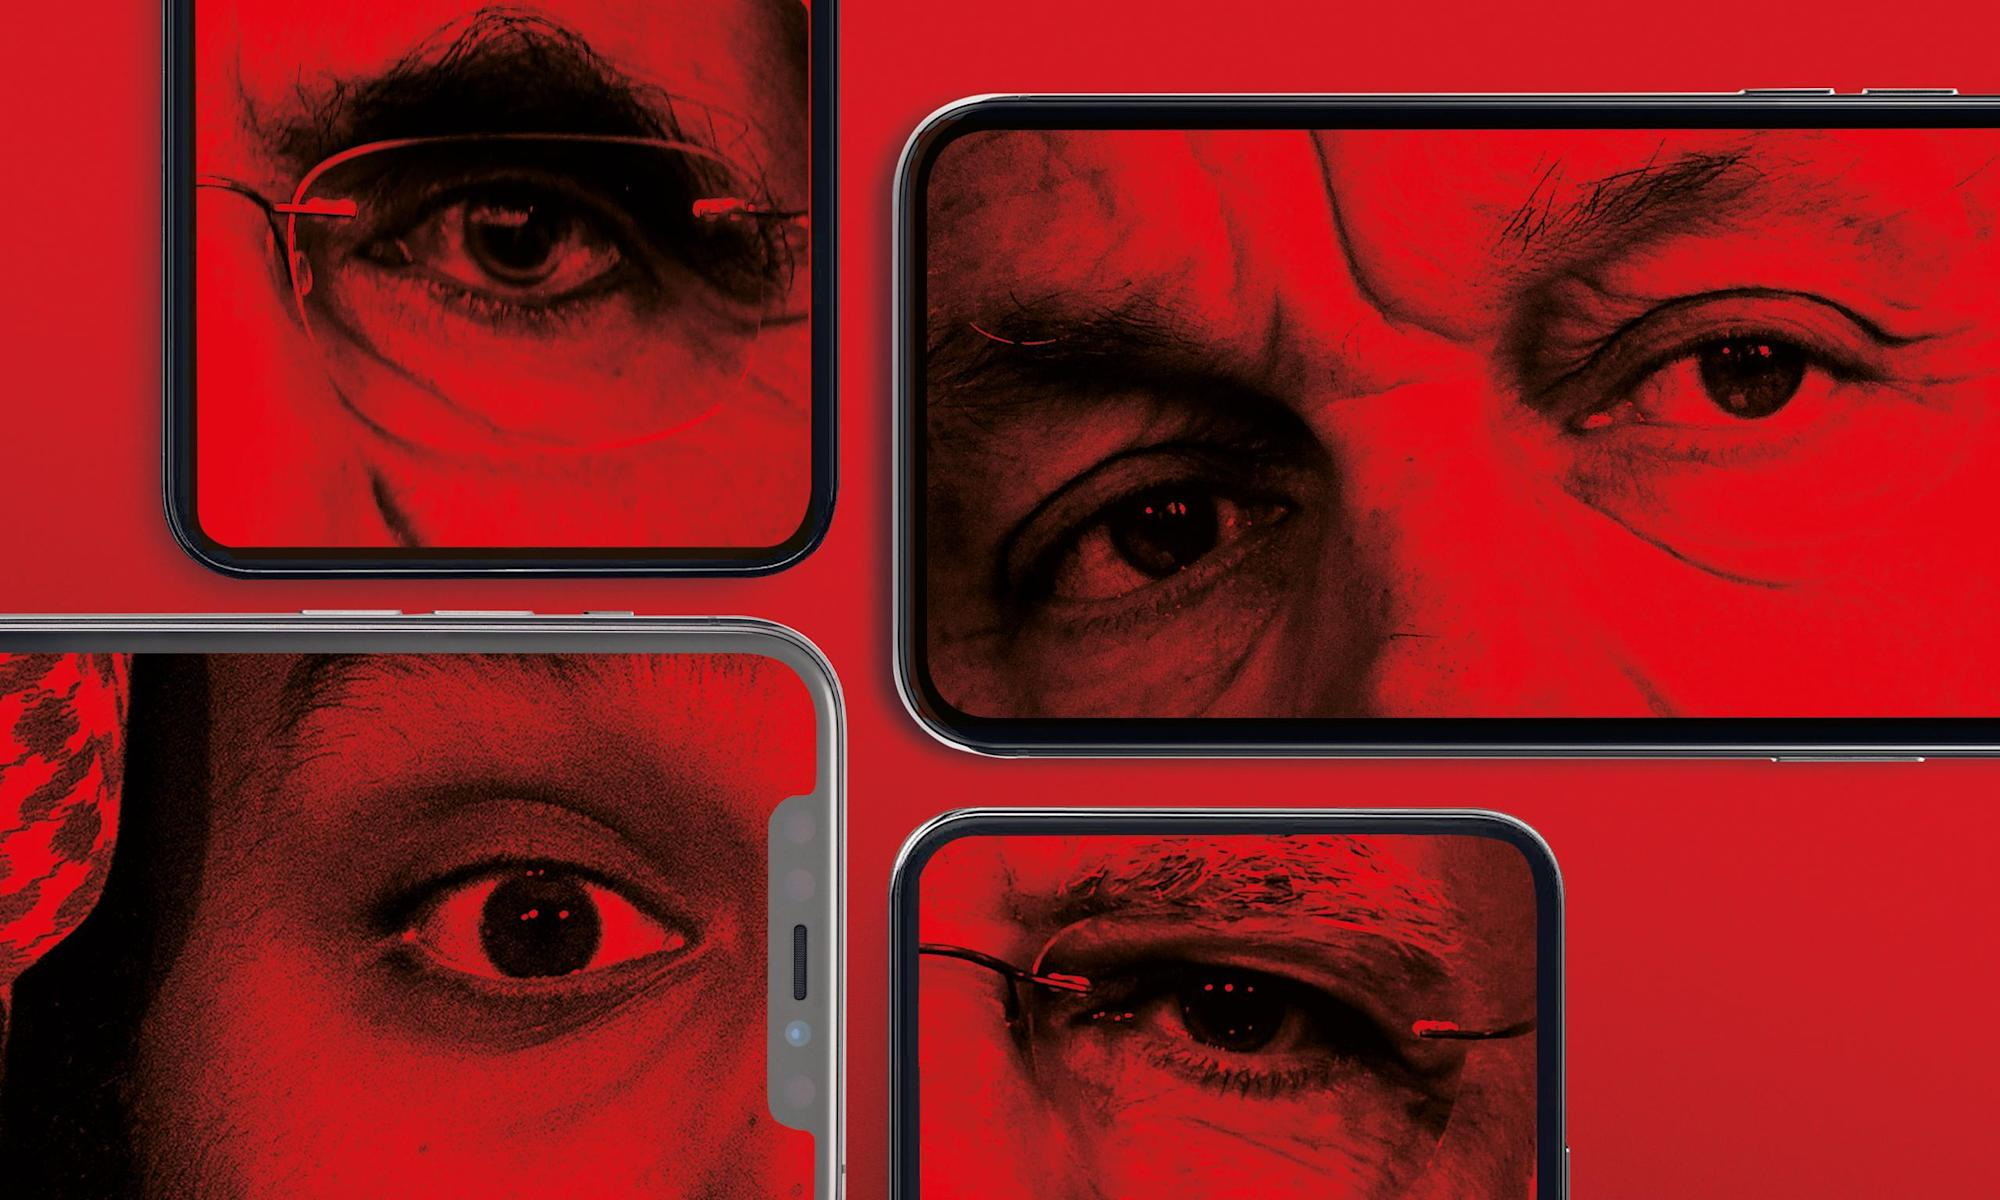 Revealed: leak uncovers global abuse of cyber-surveillance weapon